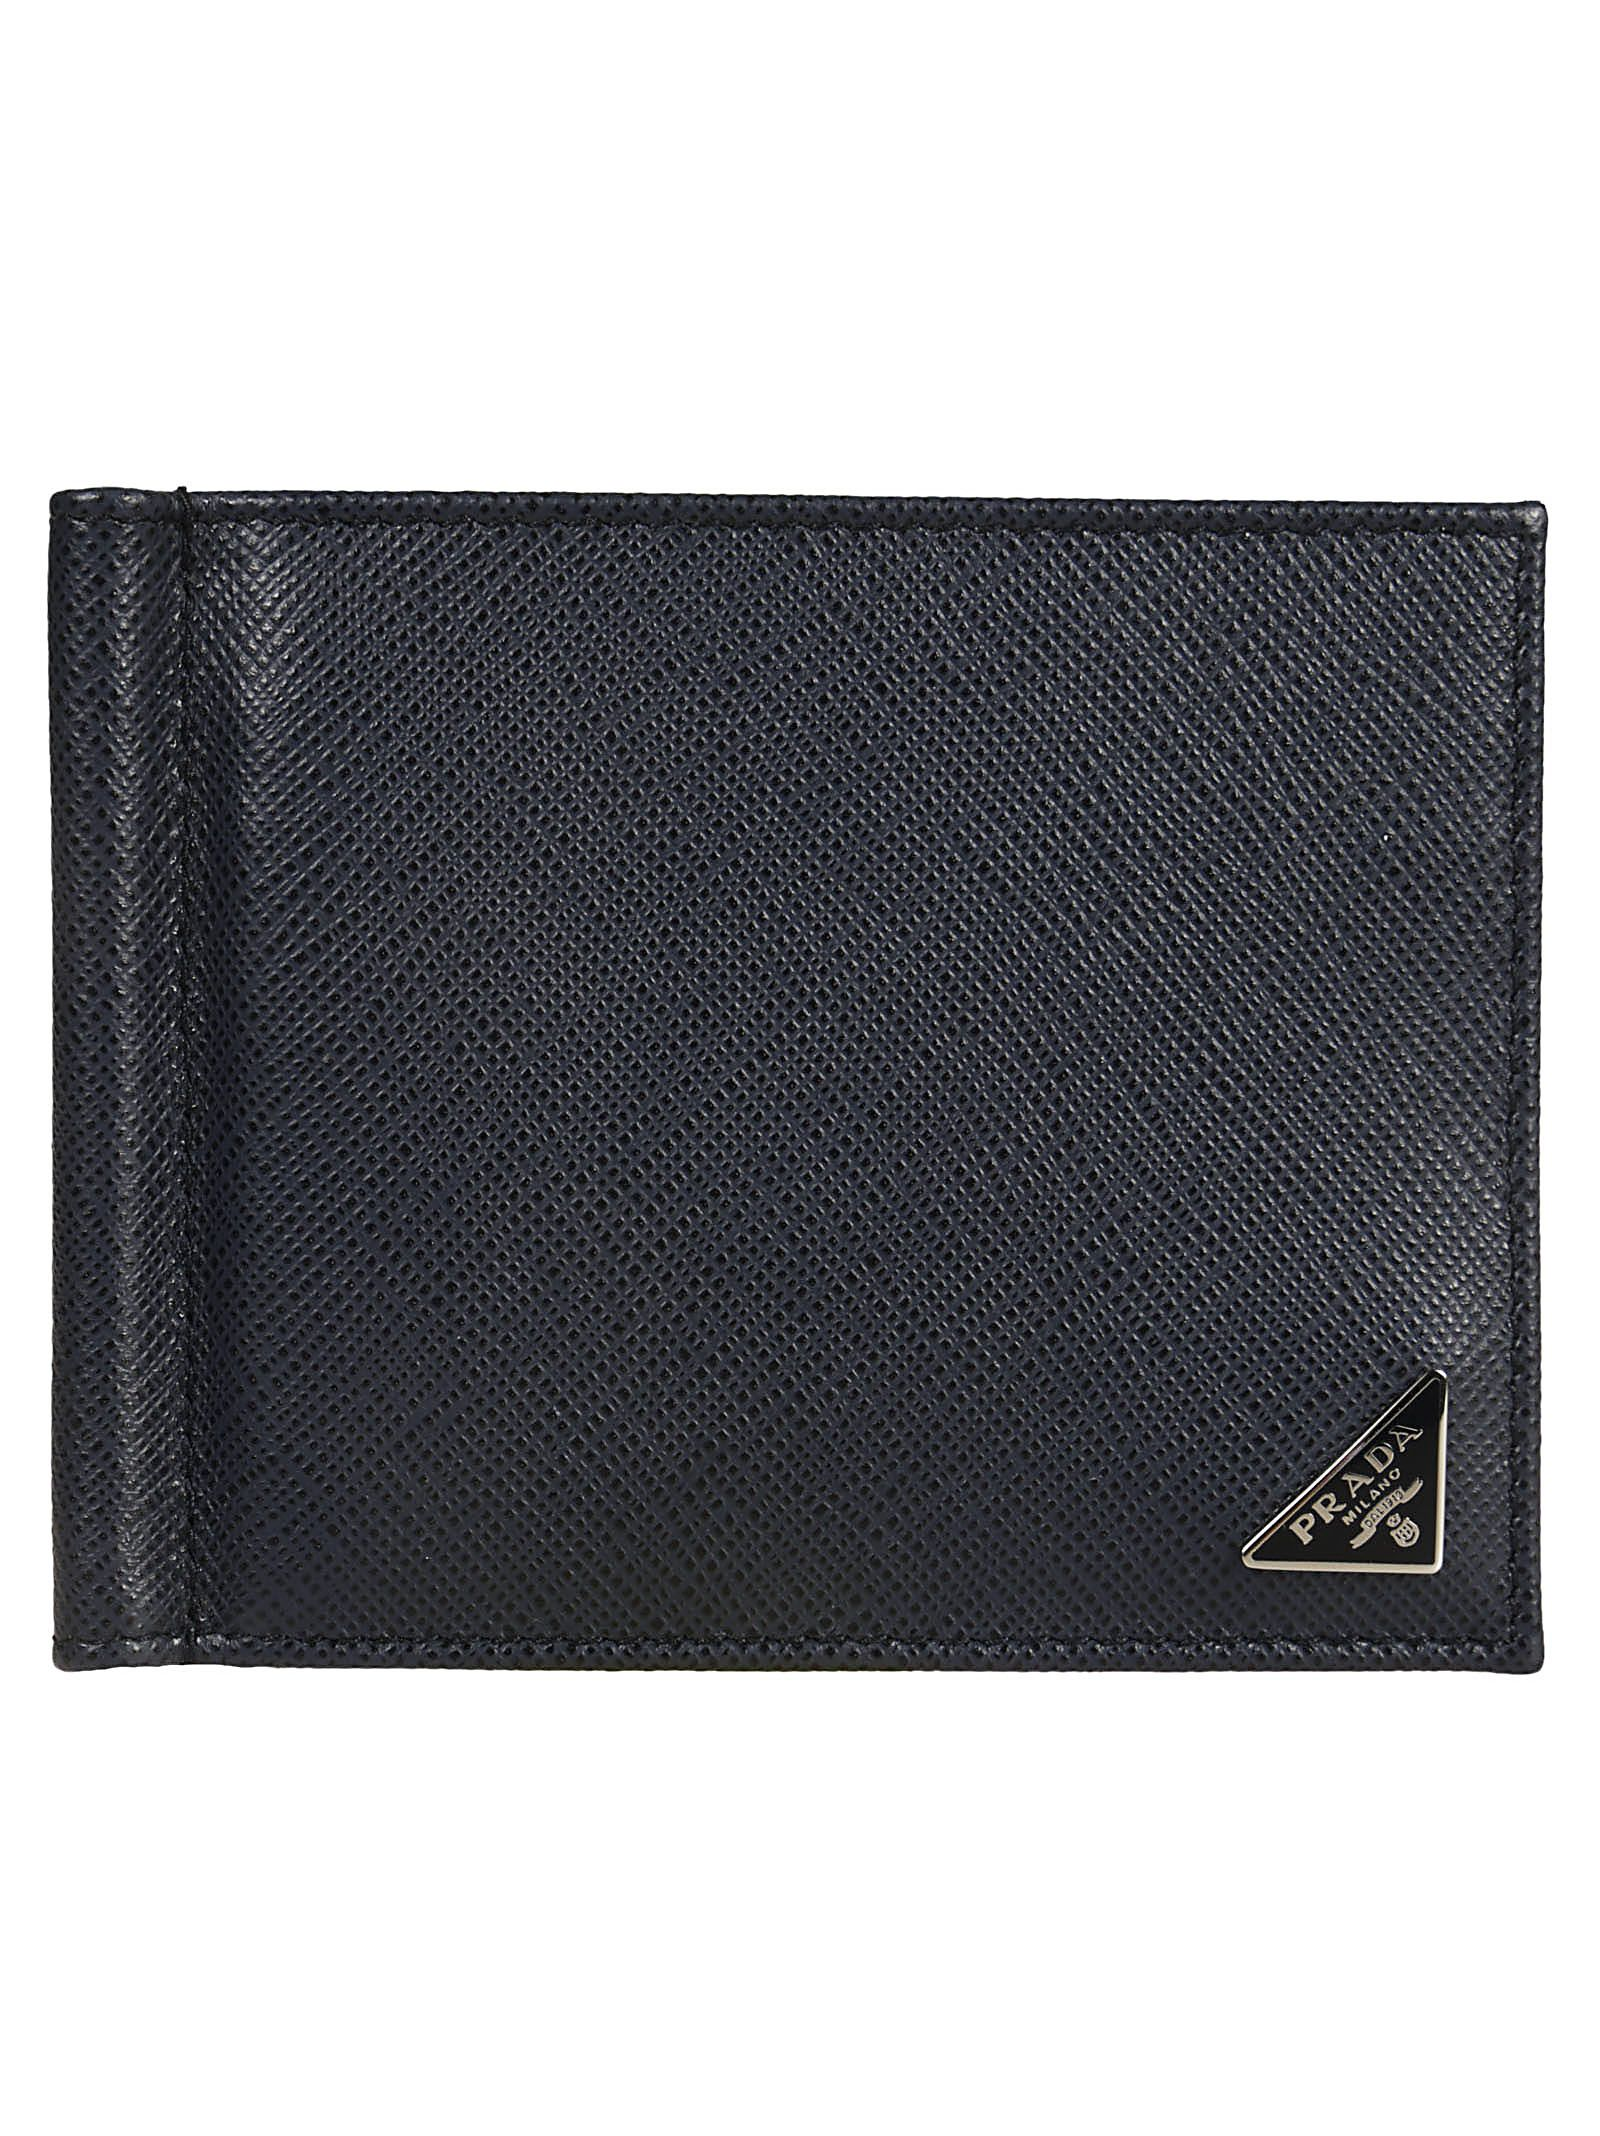 Prada Logo Grained Wallet